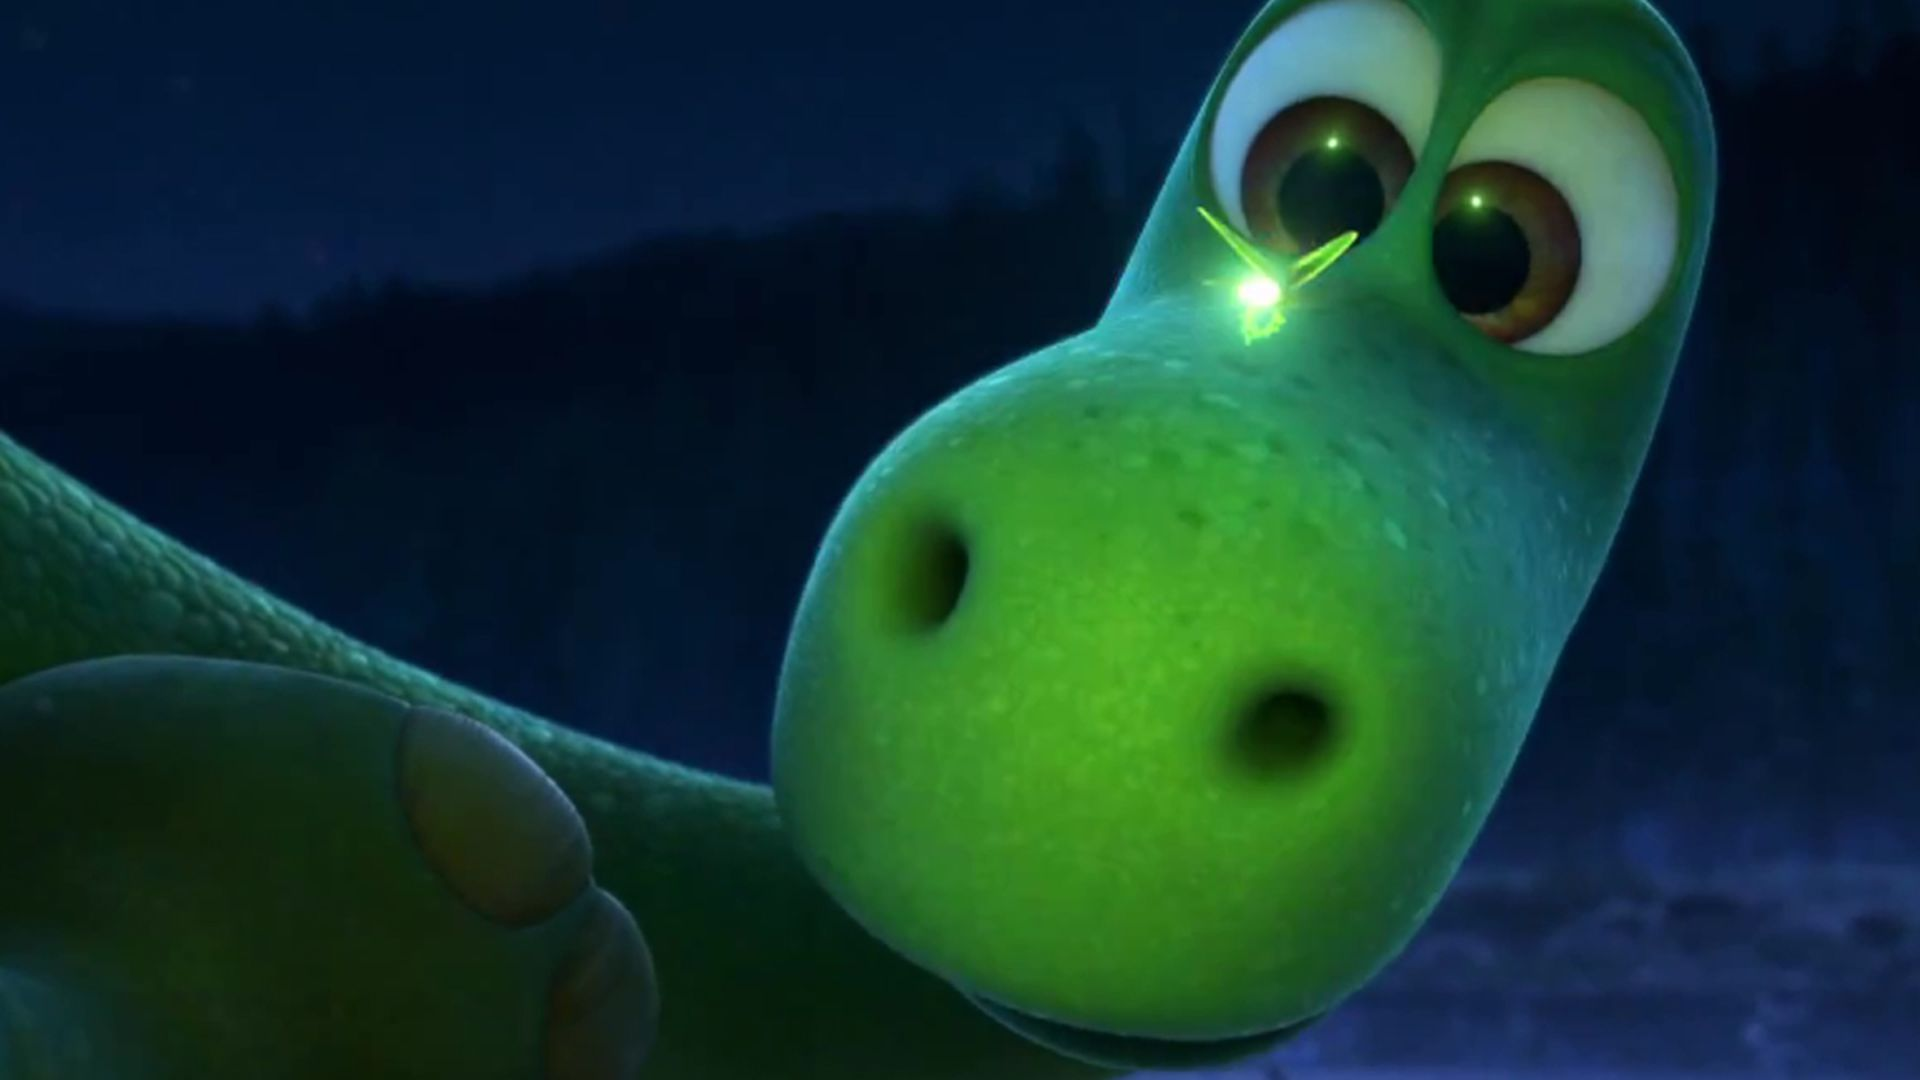 The Good Dinosaur review: One of Pixar's most beautiful, but weakest films to date | Polygon